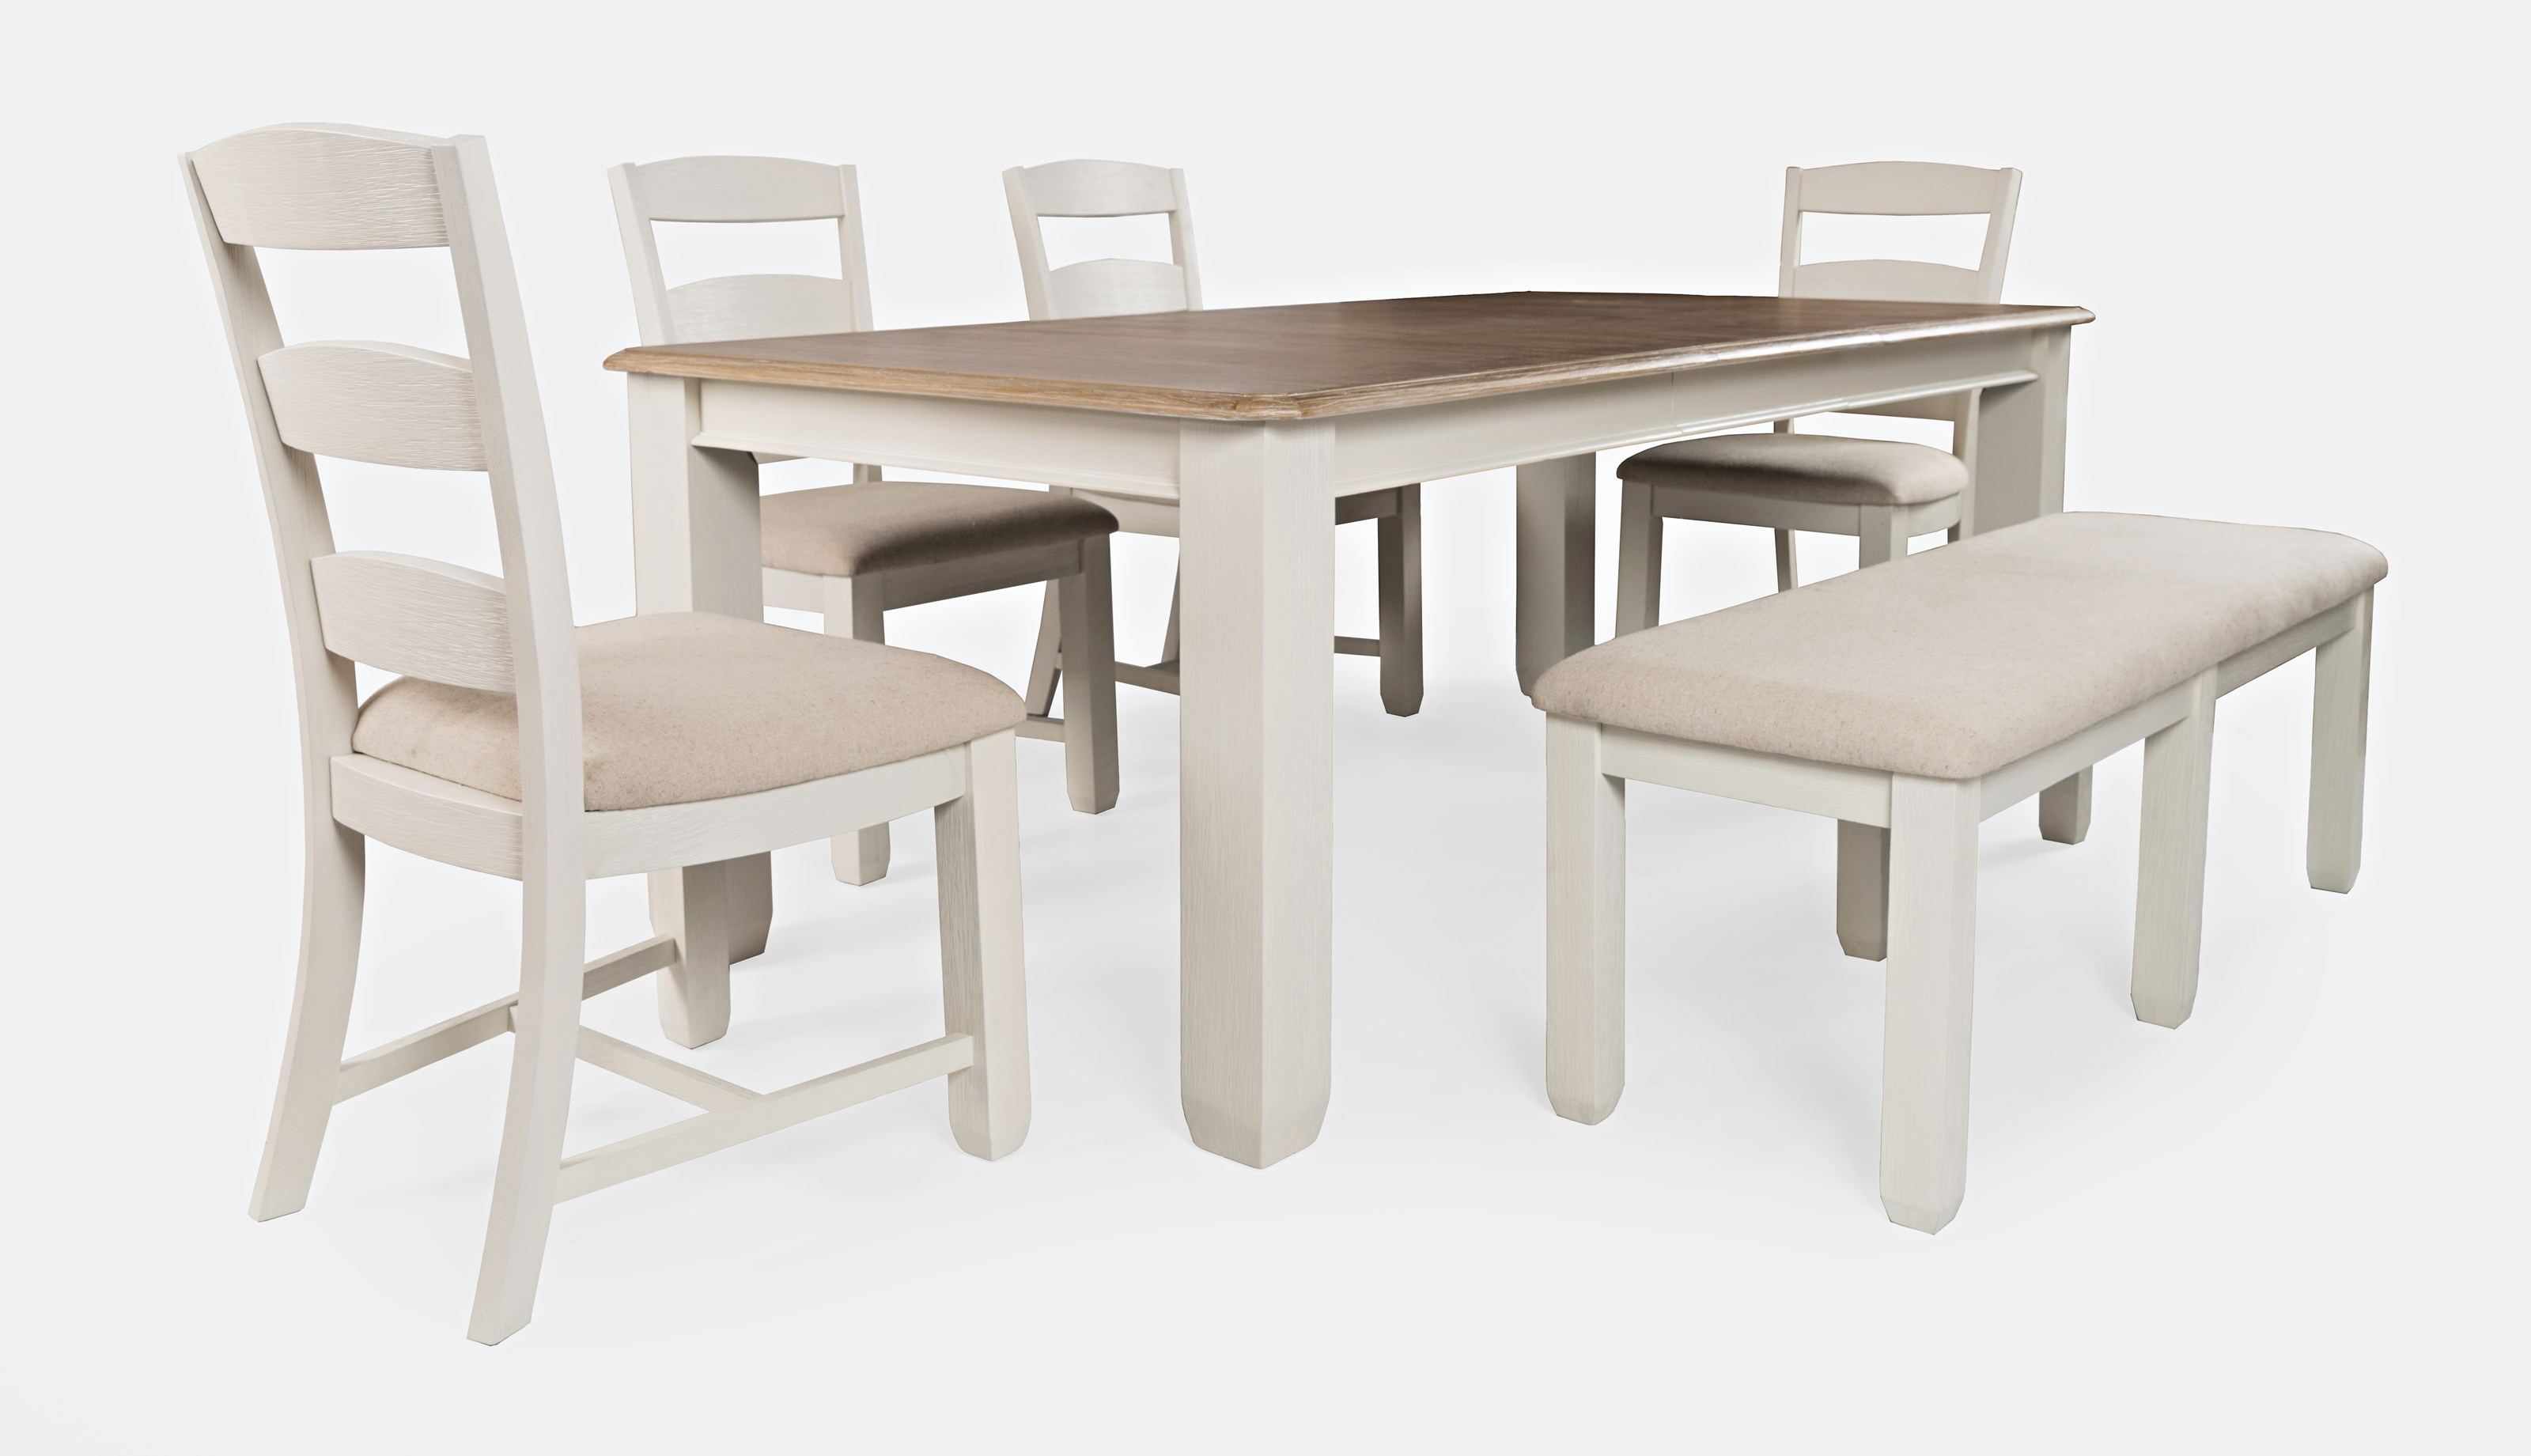 Dana Point 6-Piece Table and Chair Set with Bench by Jofran at Jofran